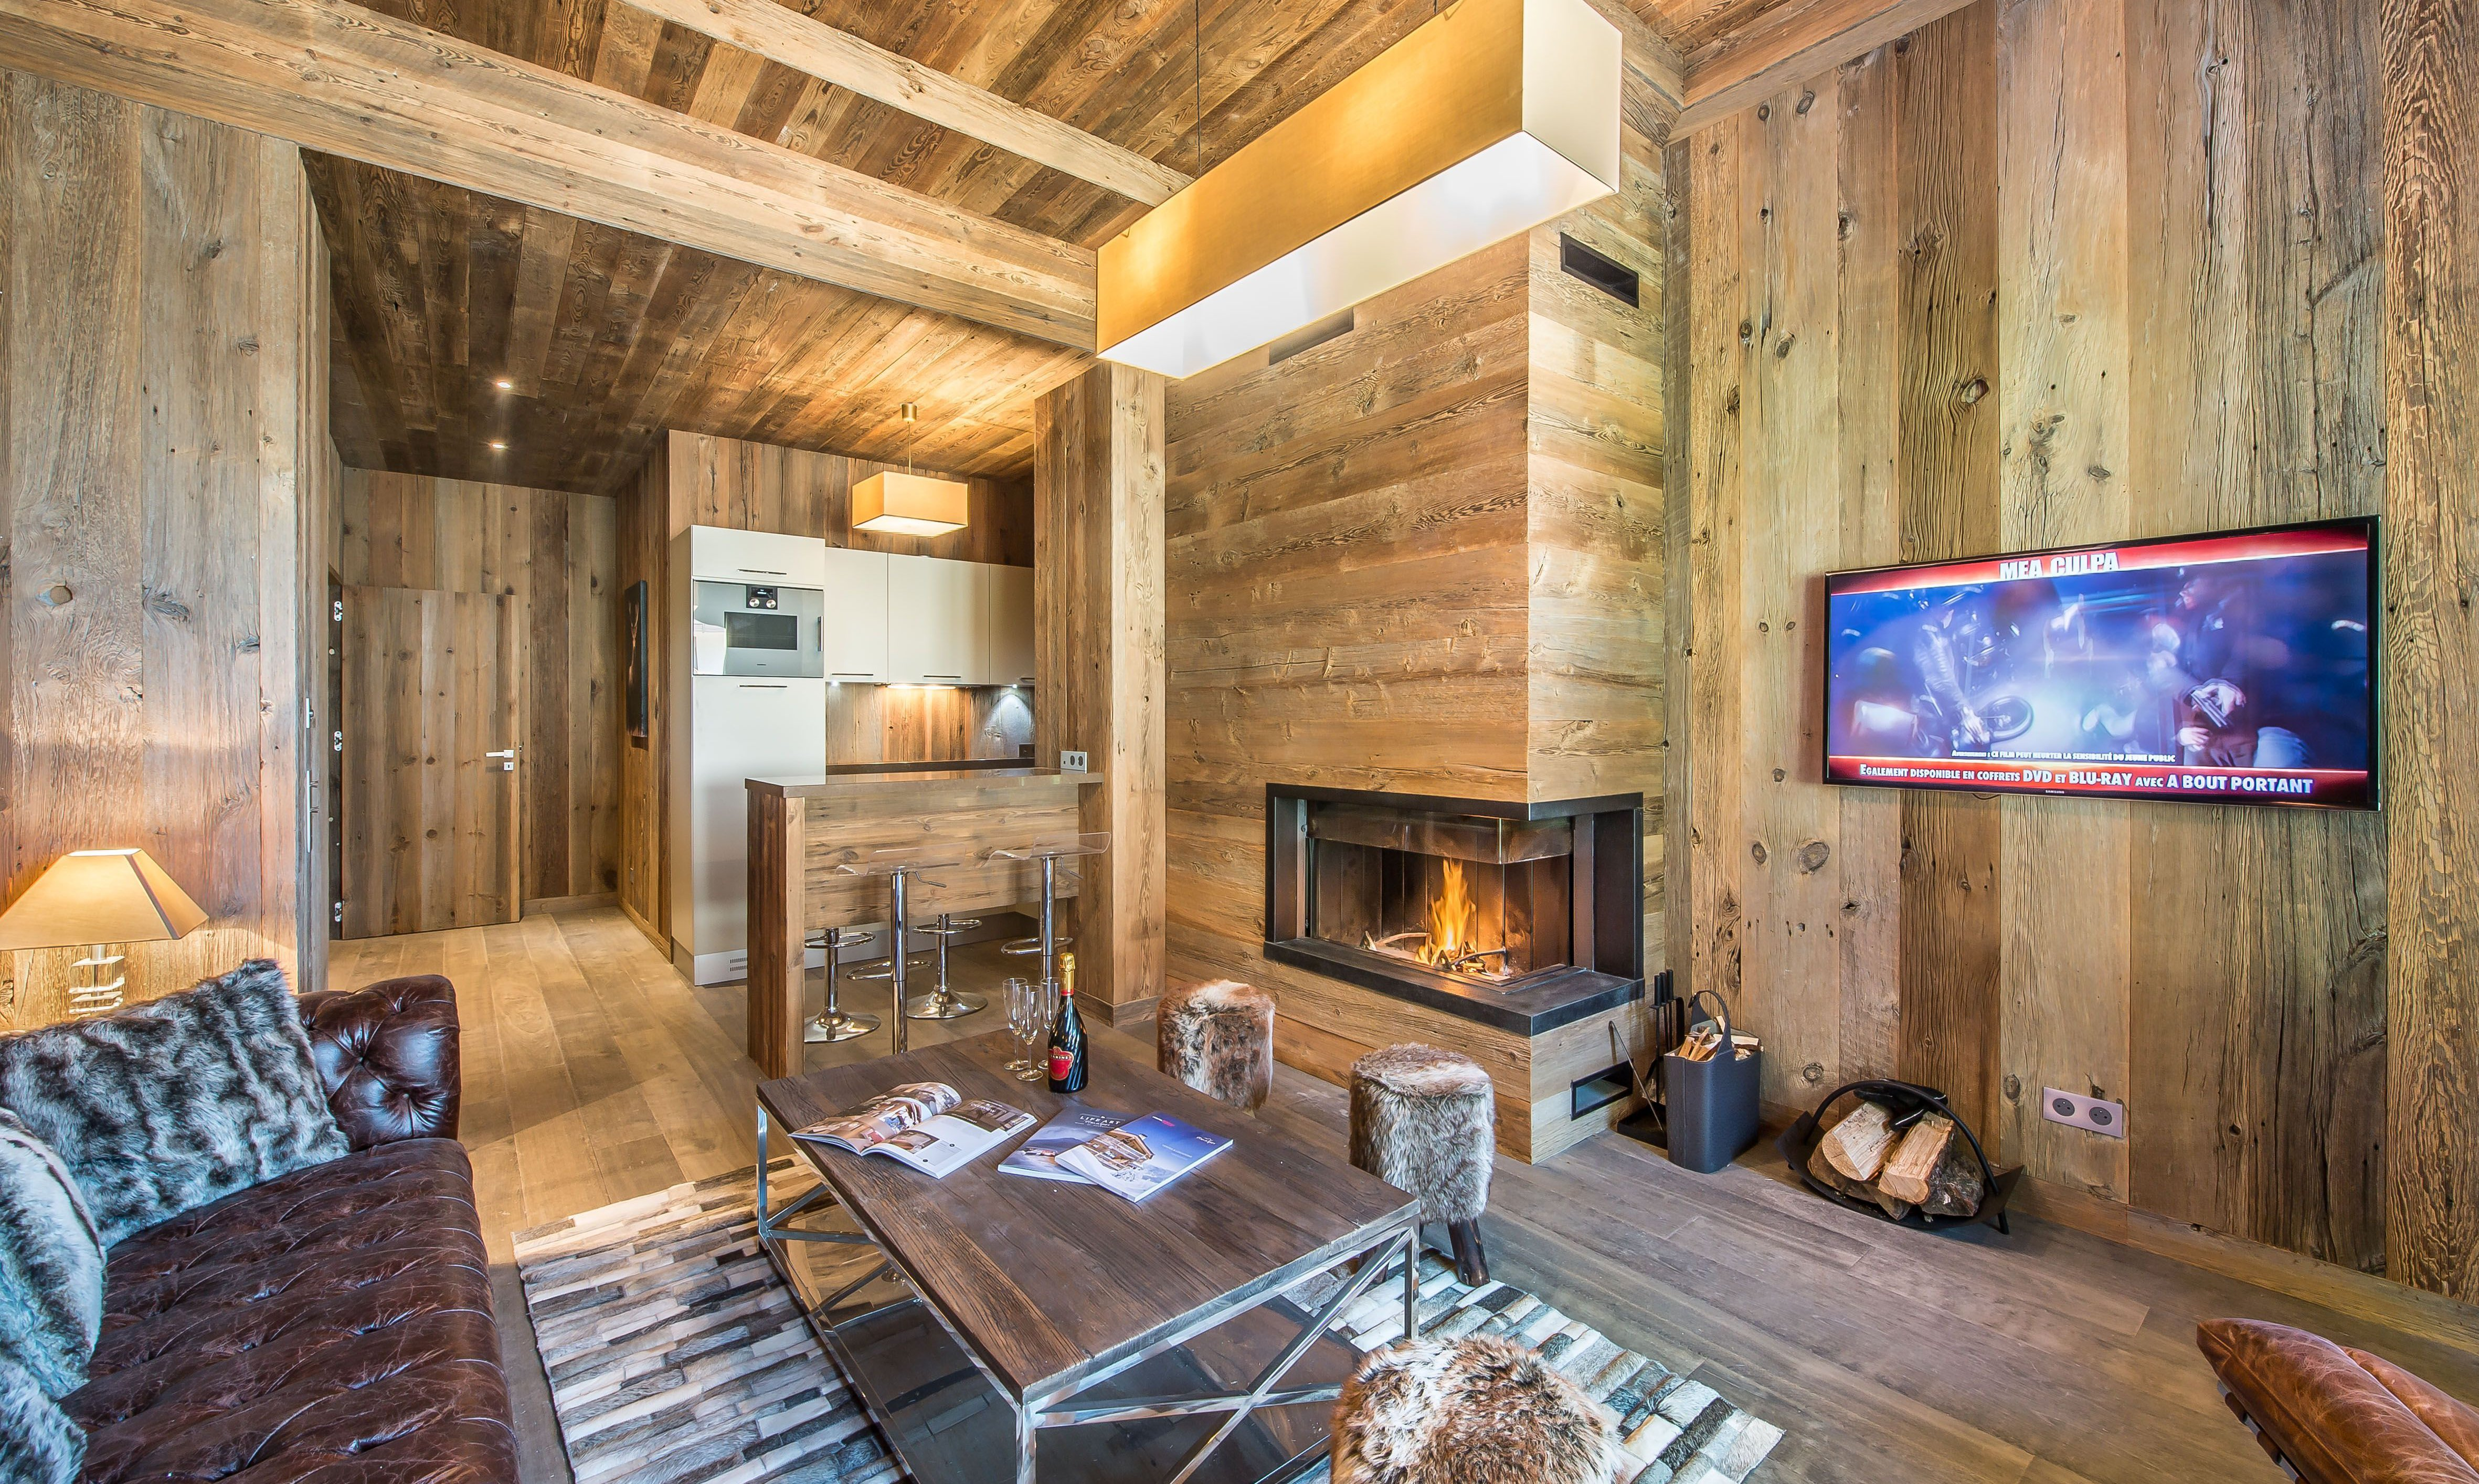 The beautiful living room with fireplace in apartment Aspen Lodge 21